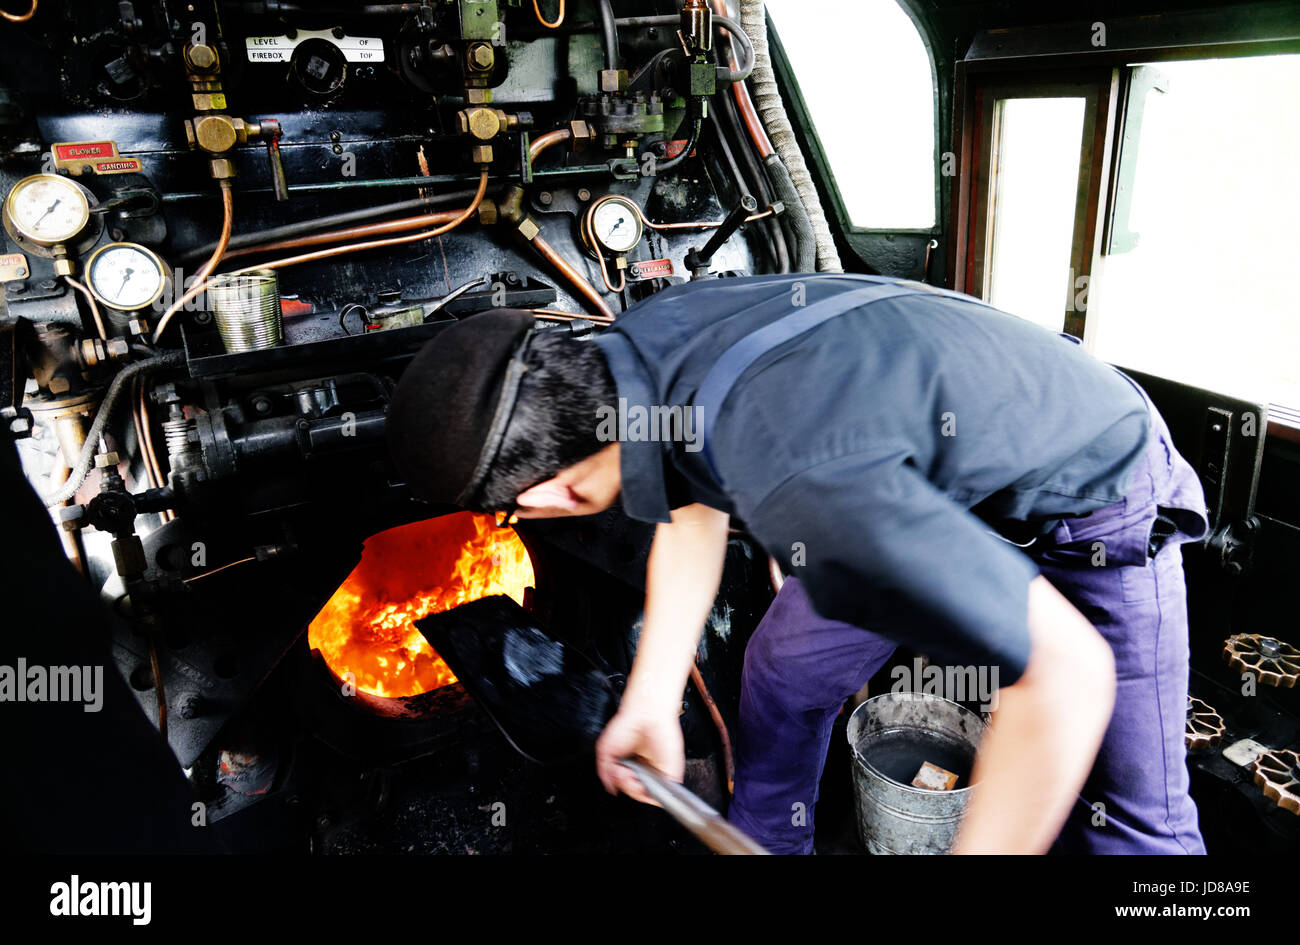 A stoker shovelling coal into the firebox on the Battle of Britain class locomotive Manston 34070 - Stock Image